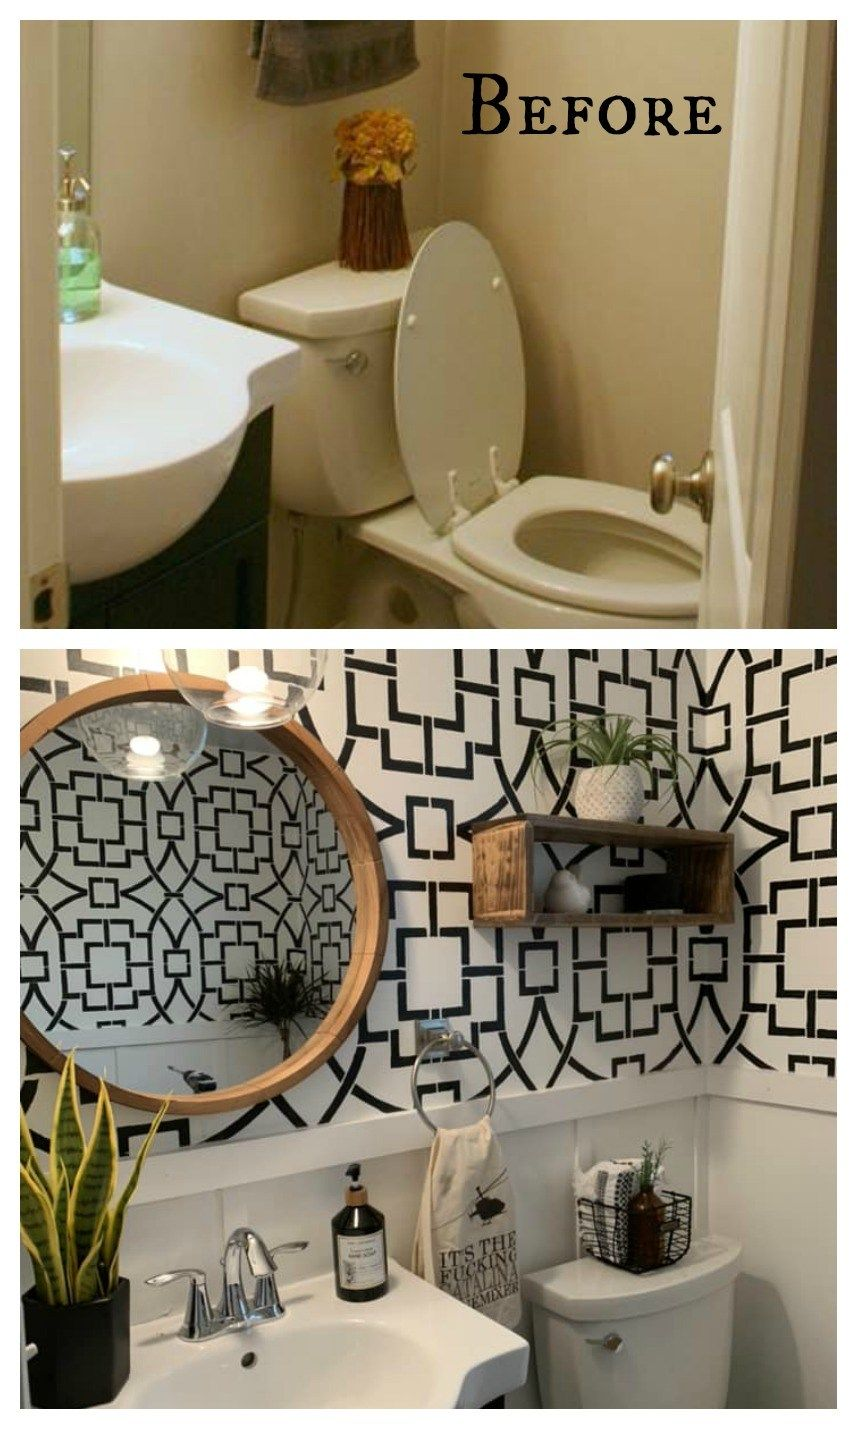 40 Wallpaper Transformations that will Blow you Away!!! images